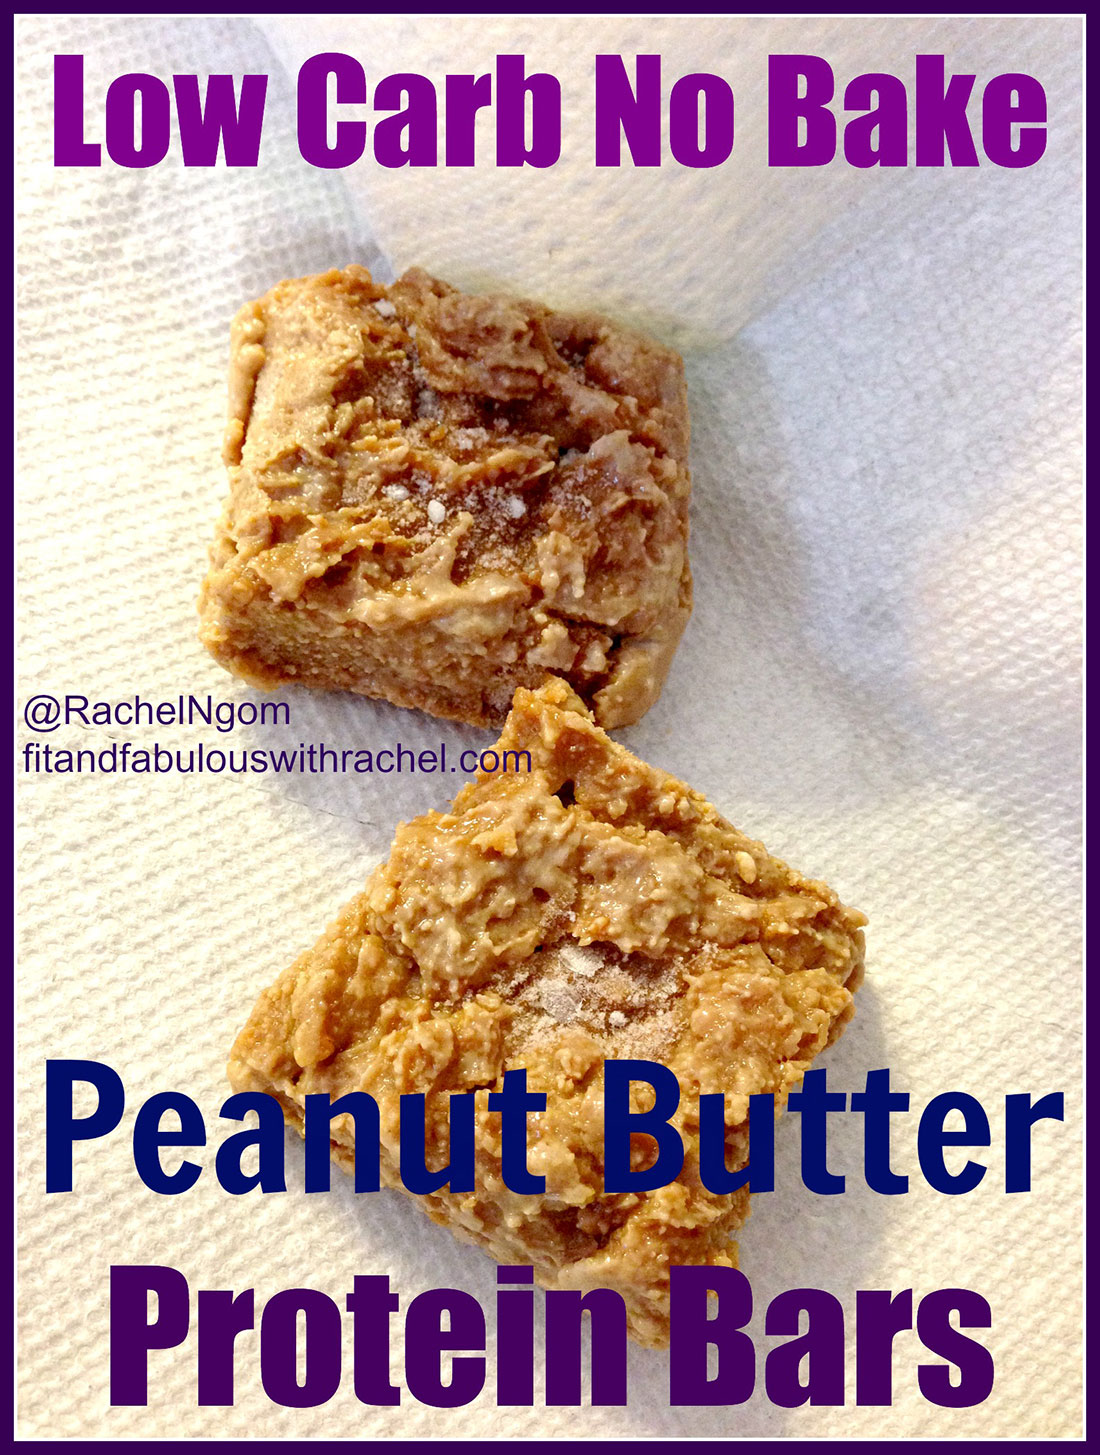 Low Carb Peanut Butter Protein Bars